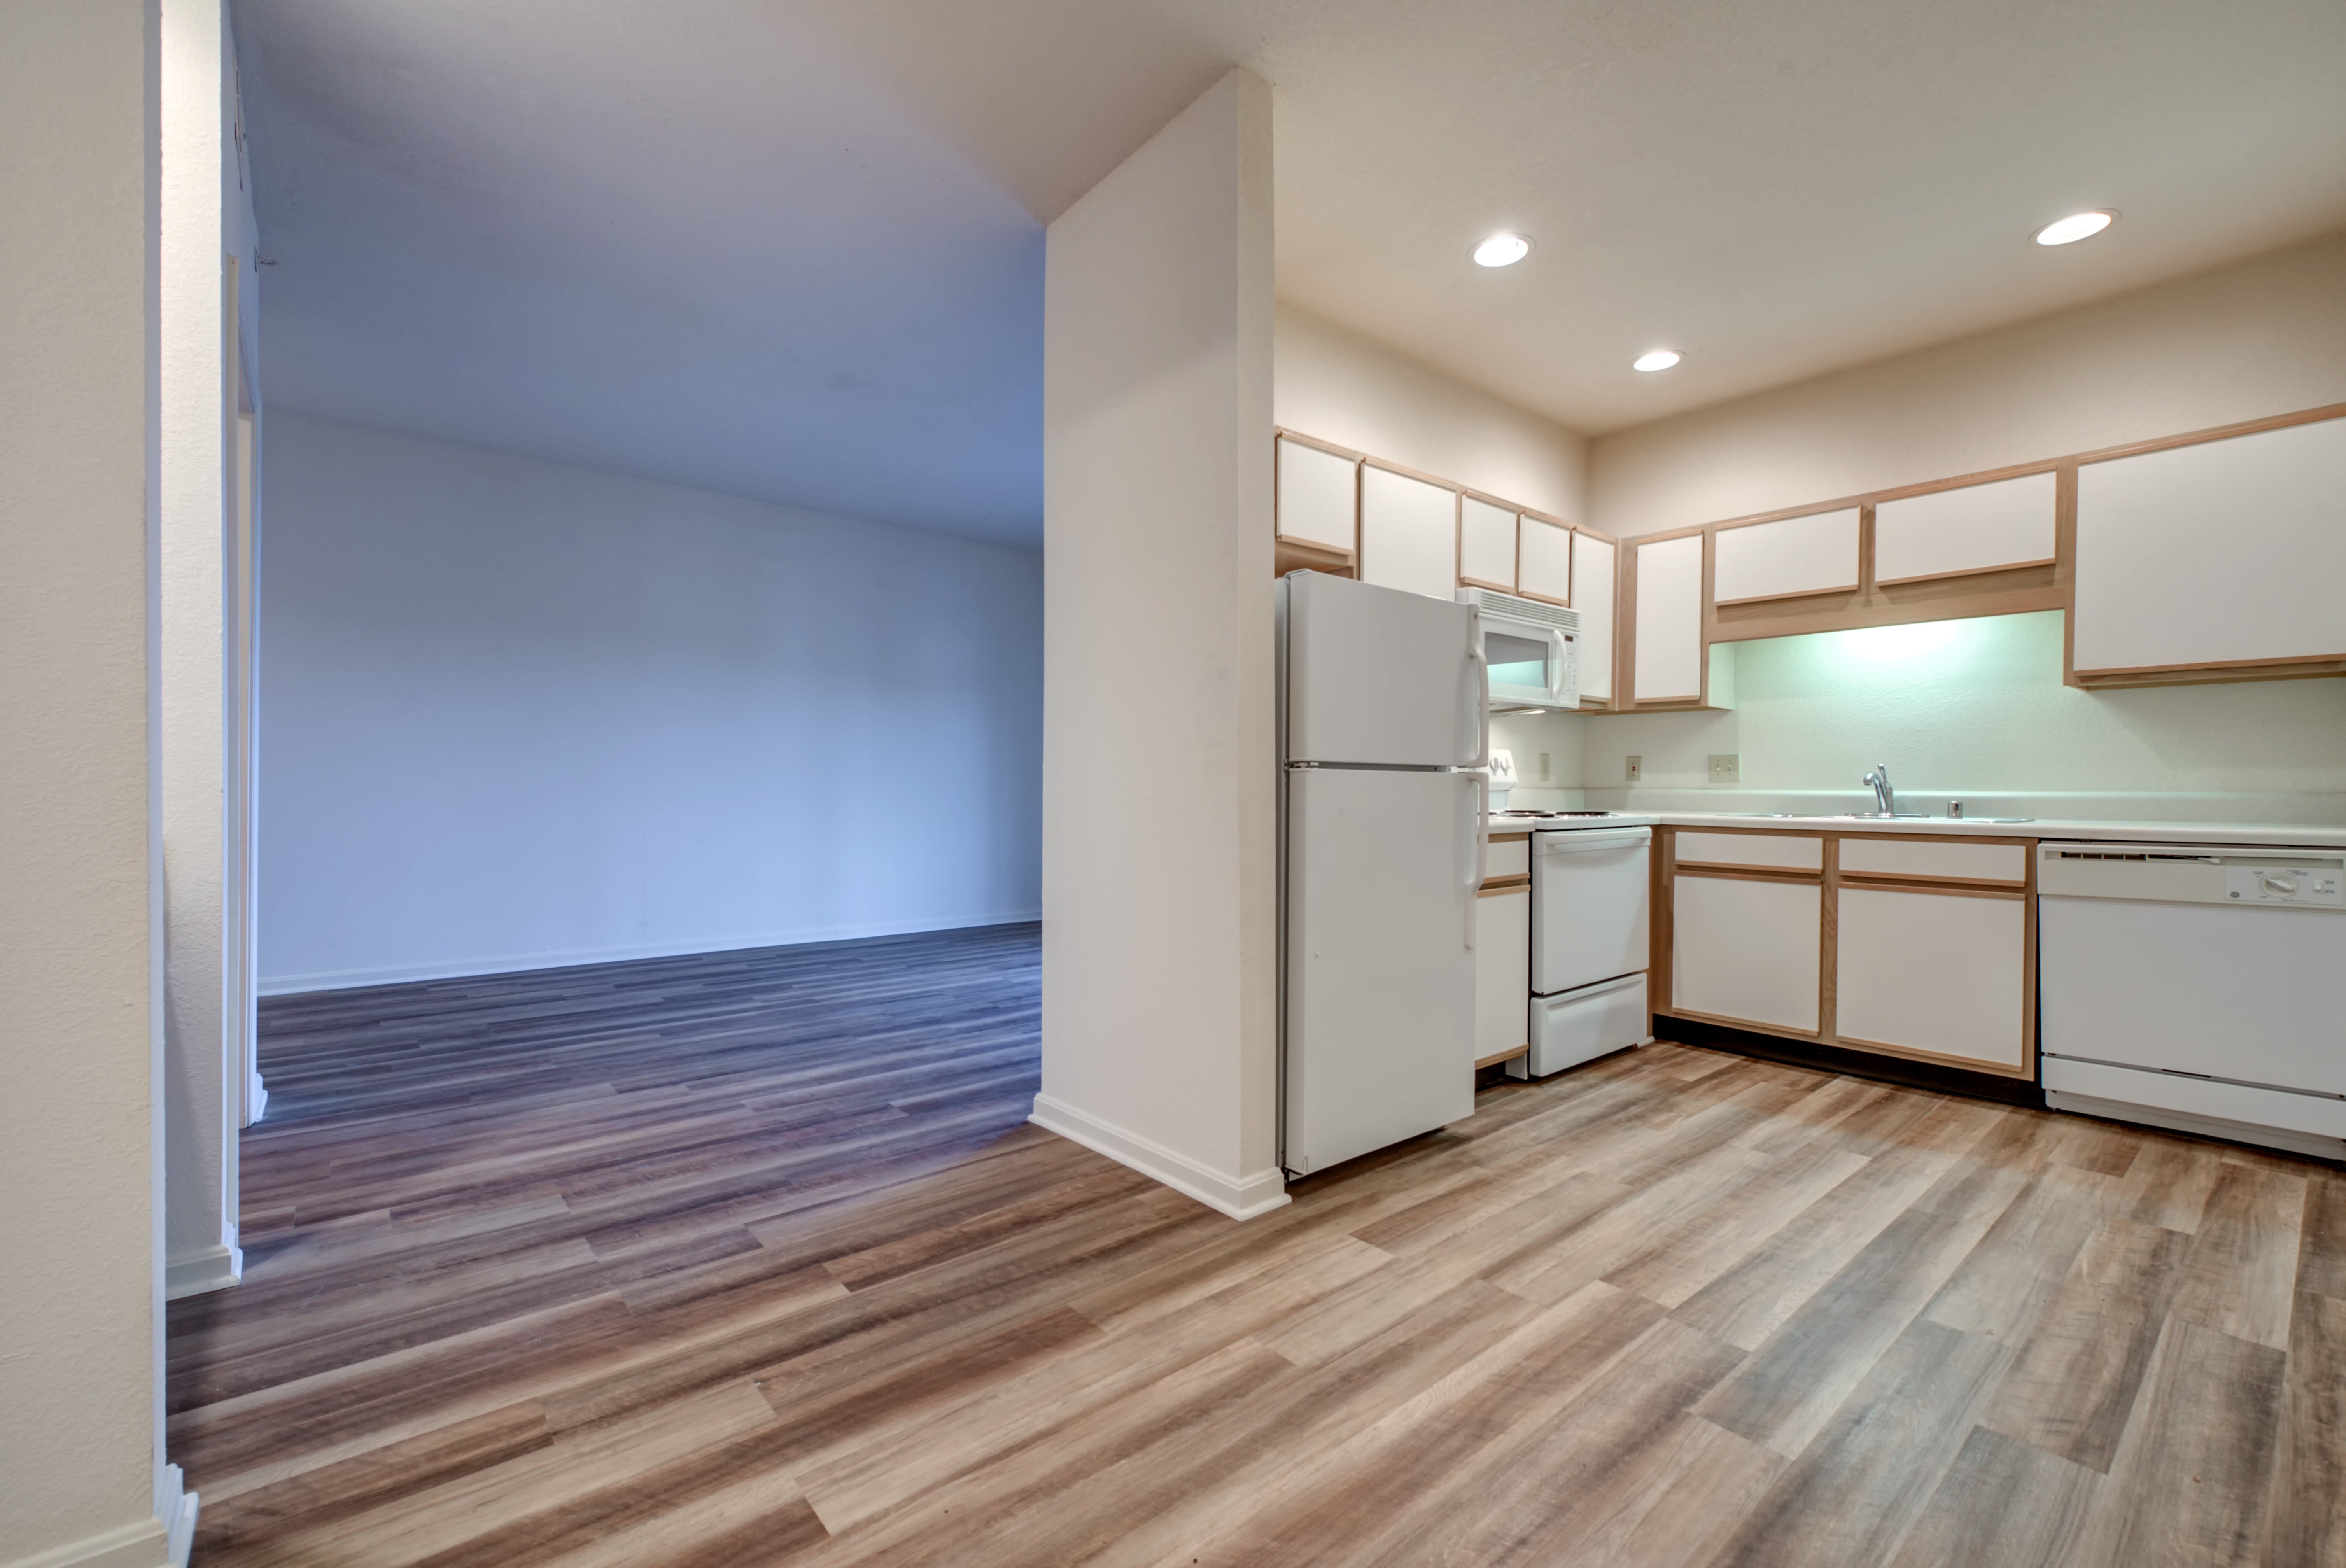 Our modern apartments in Louisville, Kentucky showcase a kitchen